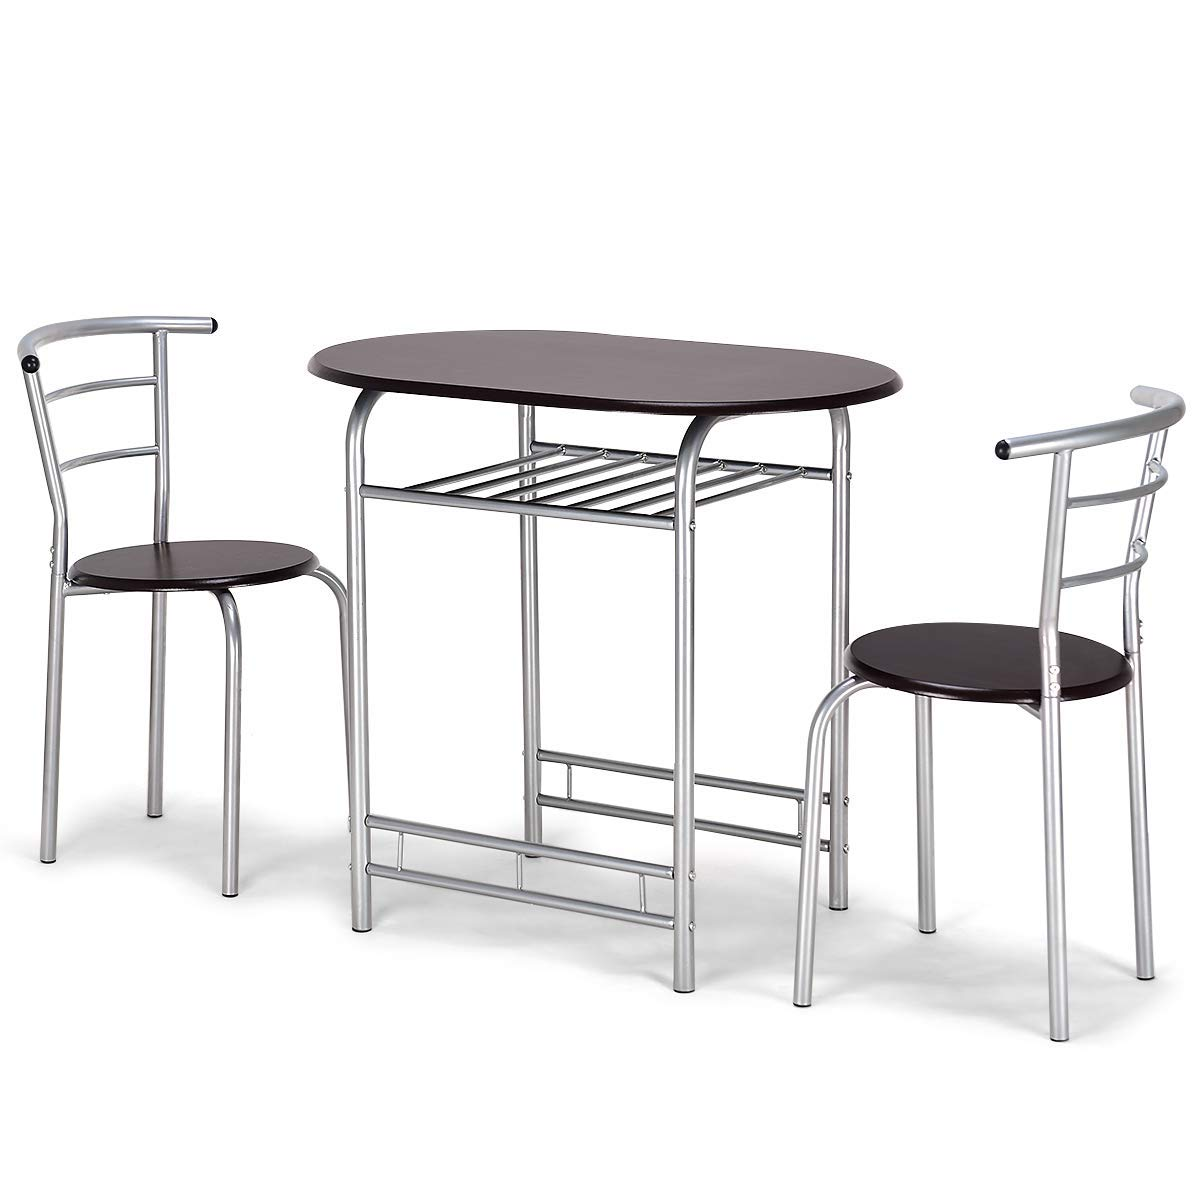 Giantex 3 PCS Bistro Dining Set Table and 2 Chairs Kitchen Furniture Pub Home Restaurant Table Chair Sets (Coffee)